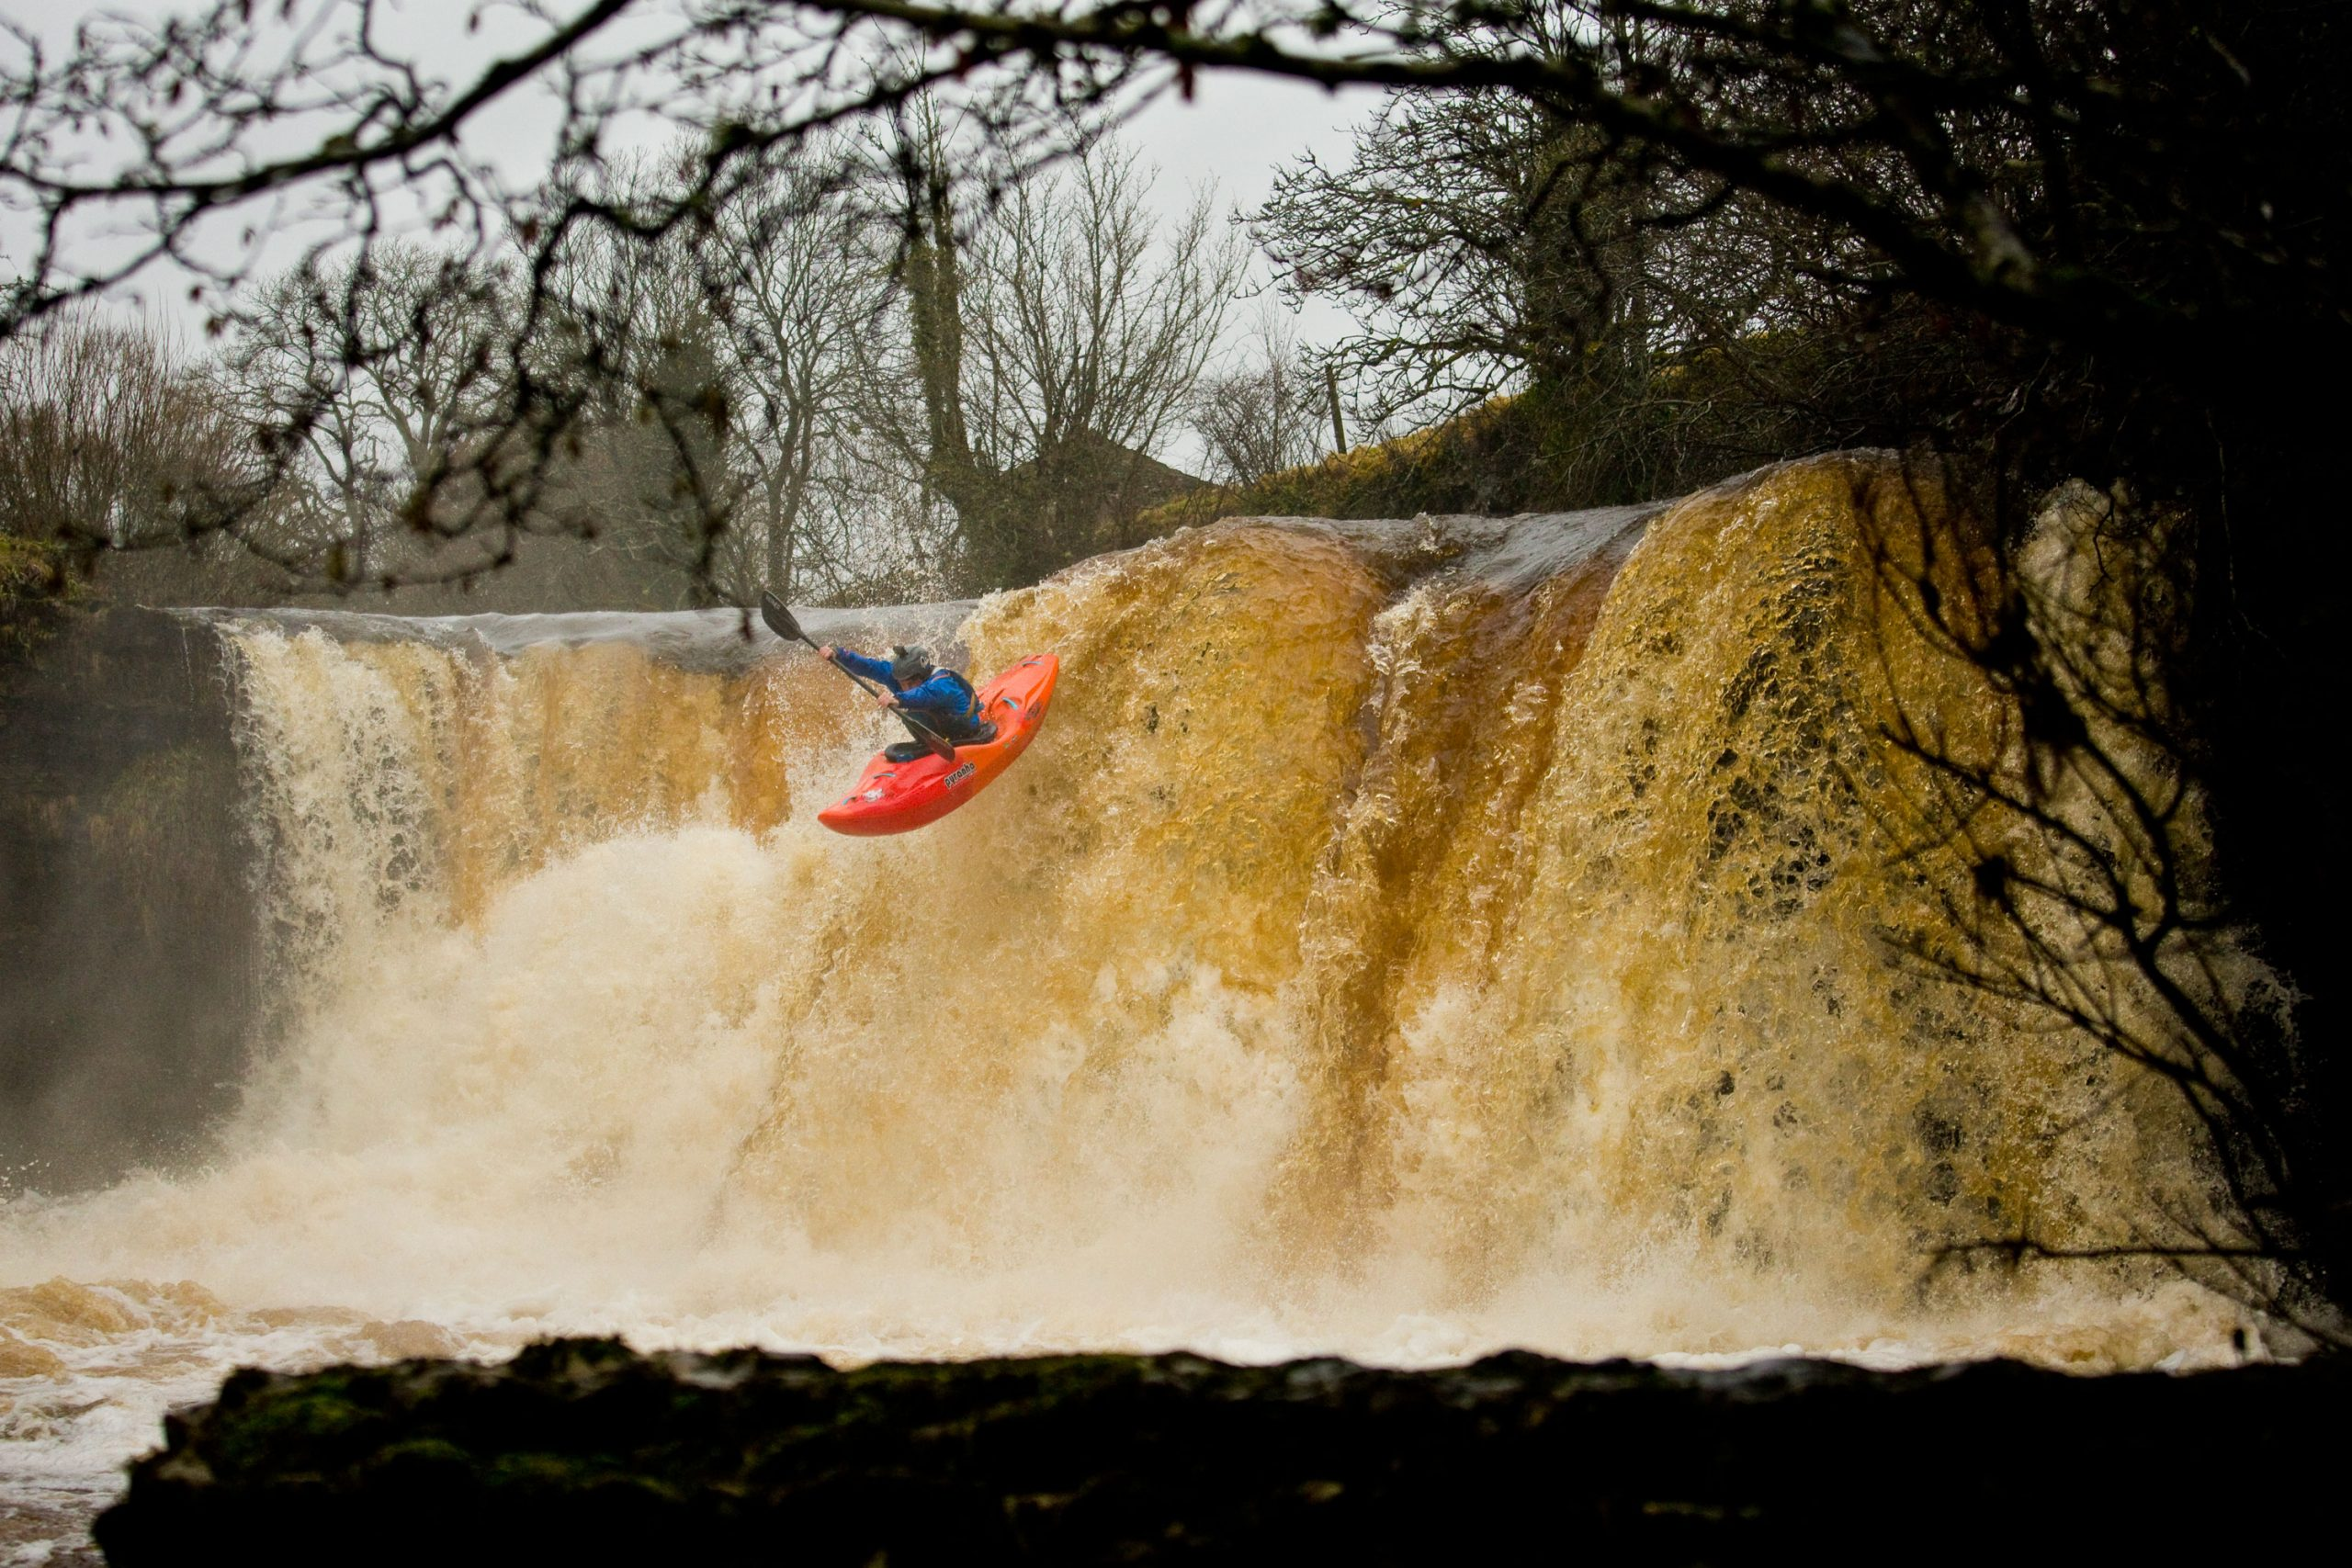 Bren Orton paddling a Scorch Large in Orange Soda